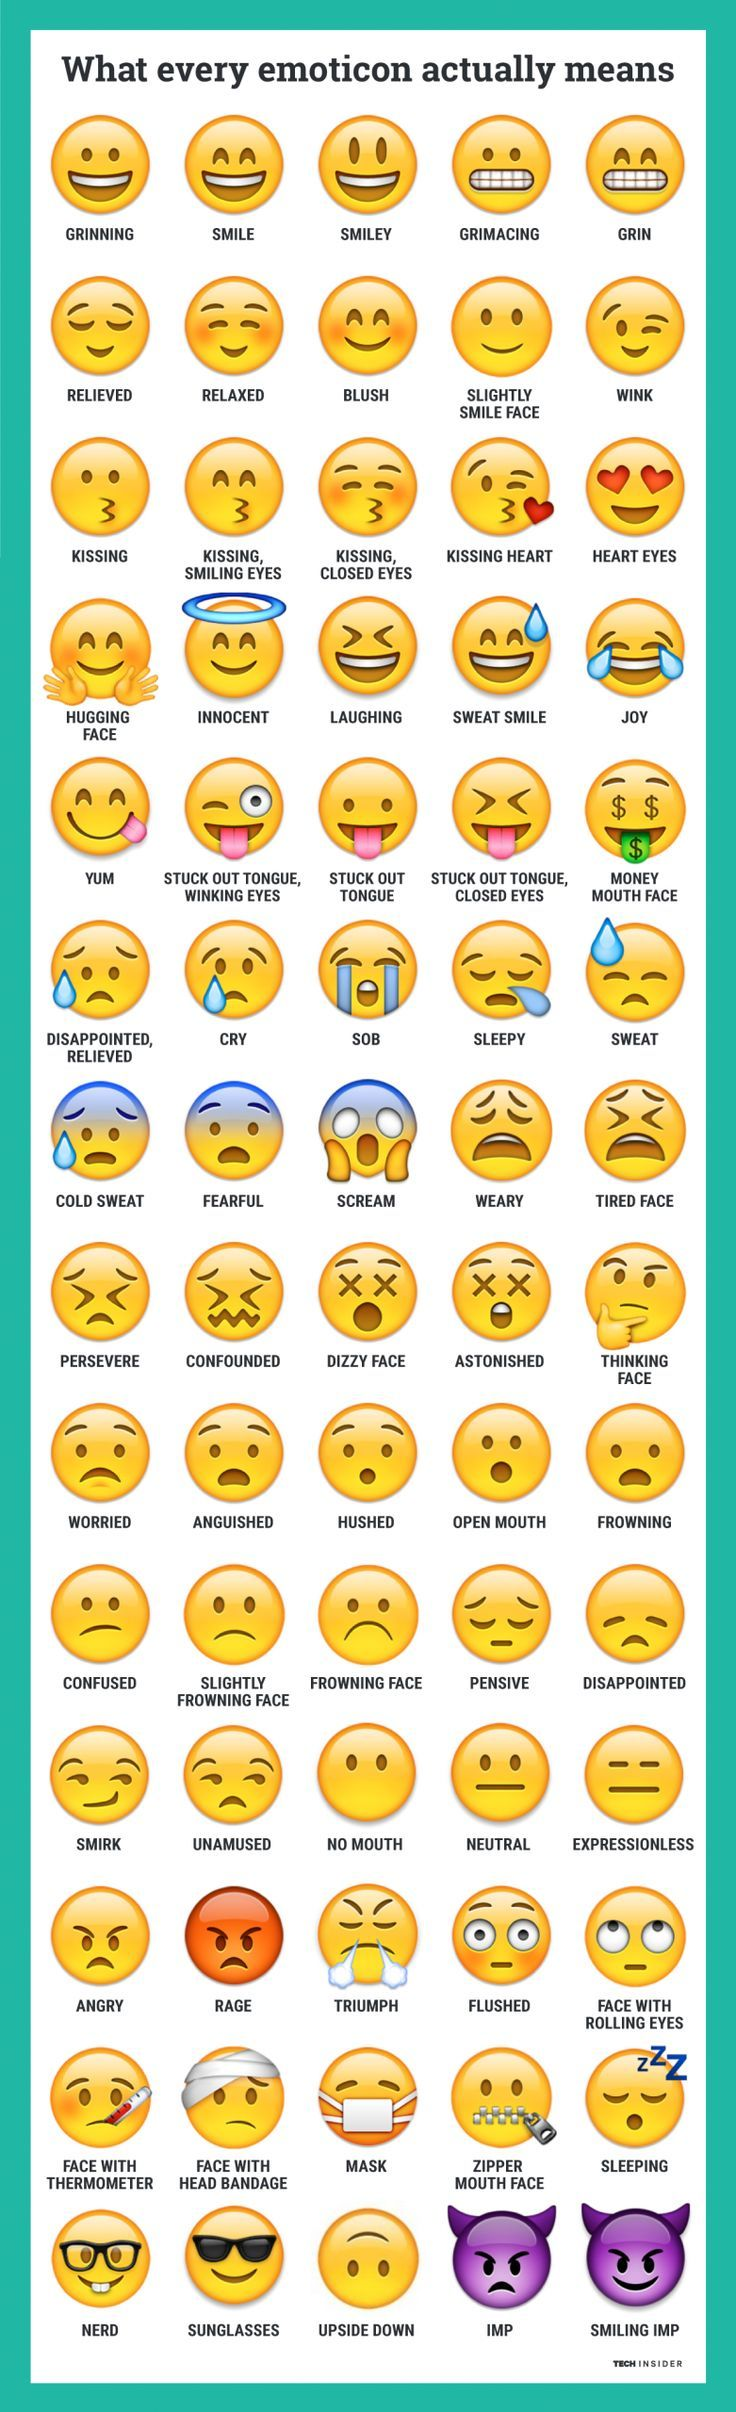 Best 25 facebook smileys code ideas on pinterest smiley codes best 25 facebook smileys code ideas on pinterest smiley codes 736x2412 jpeg buycottarizona Images